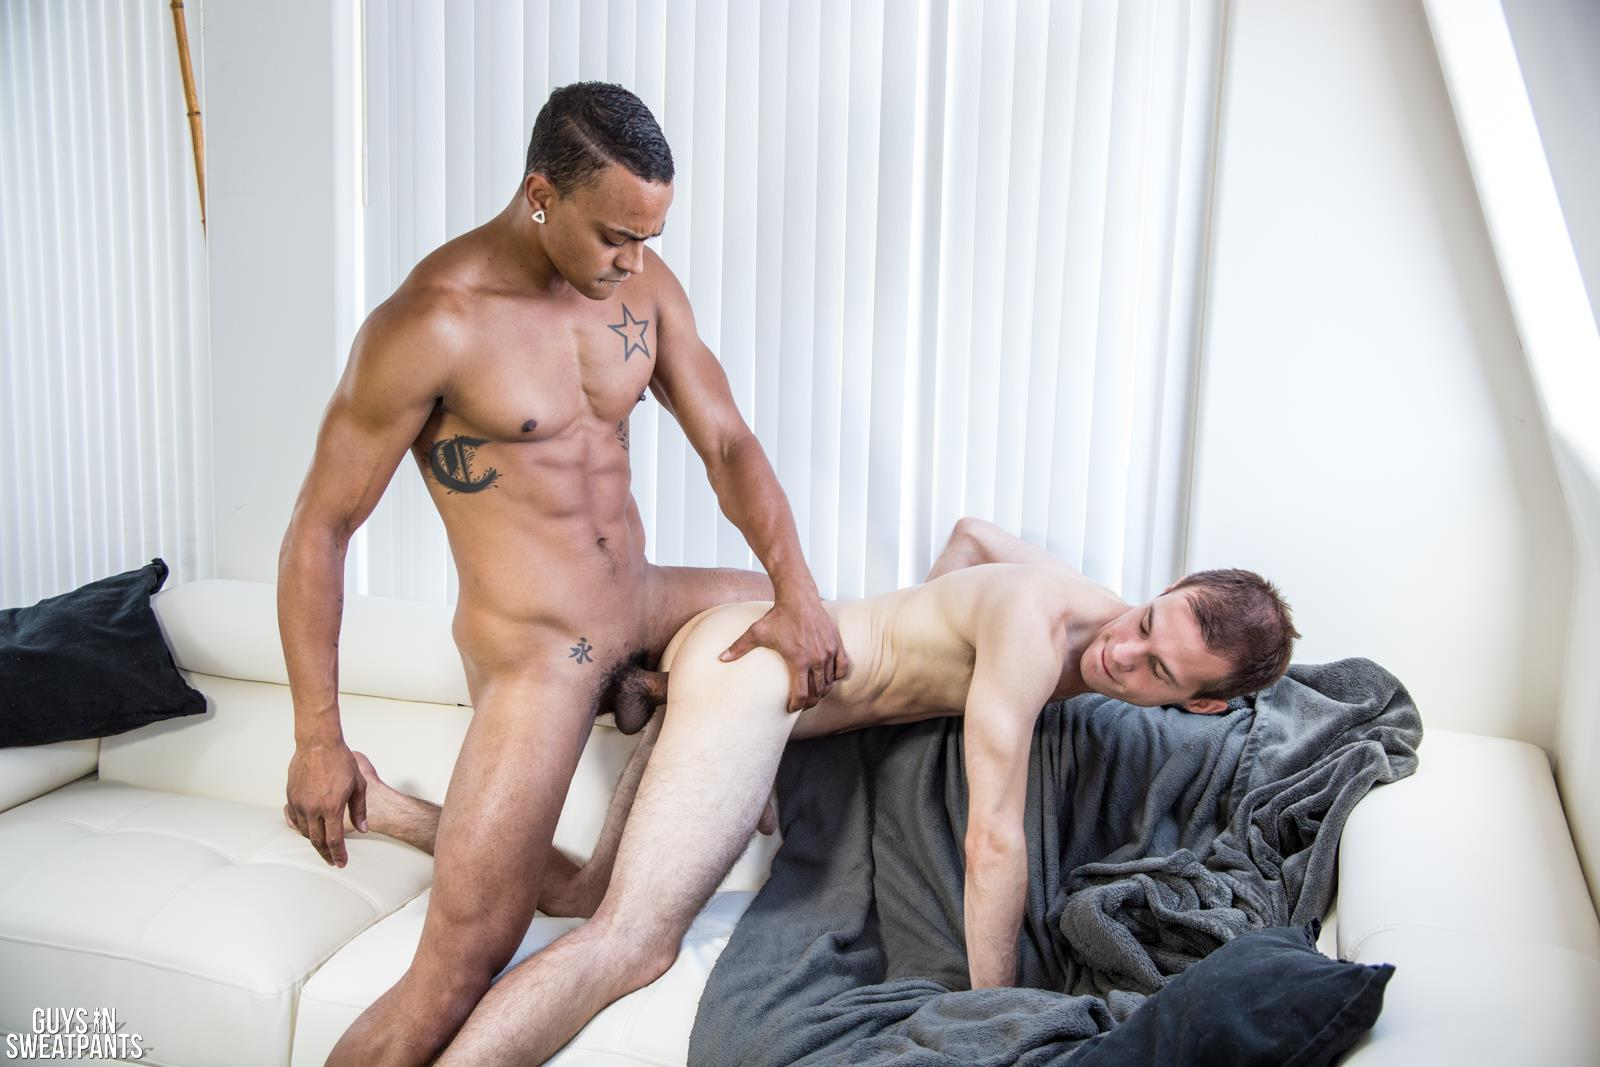 Interracial guys enjoy sex